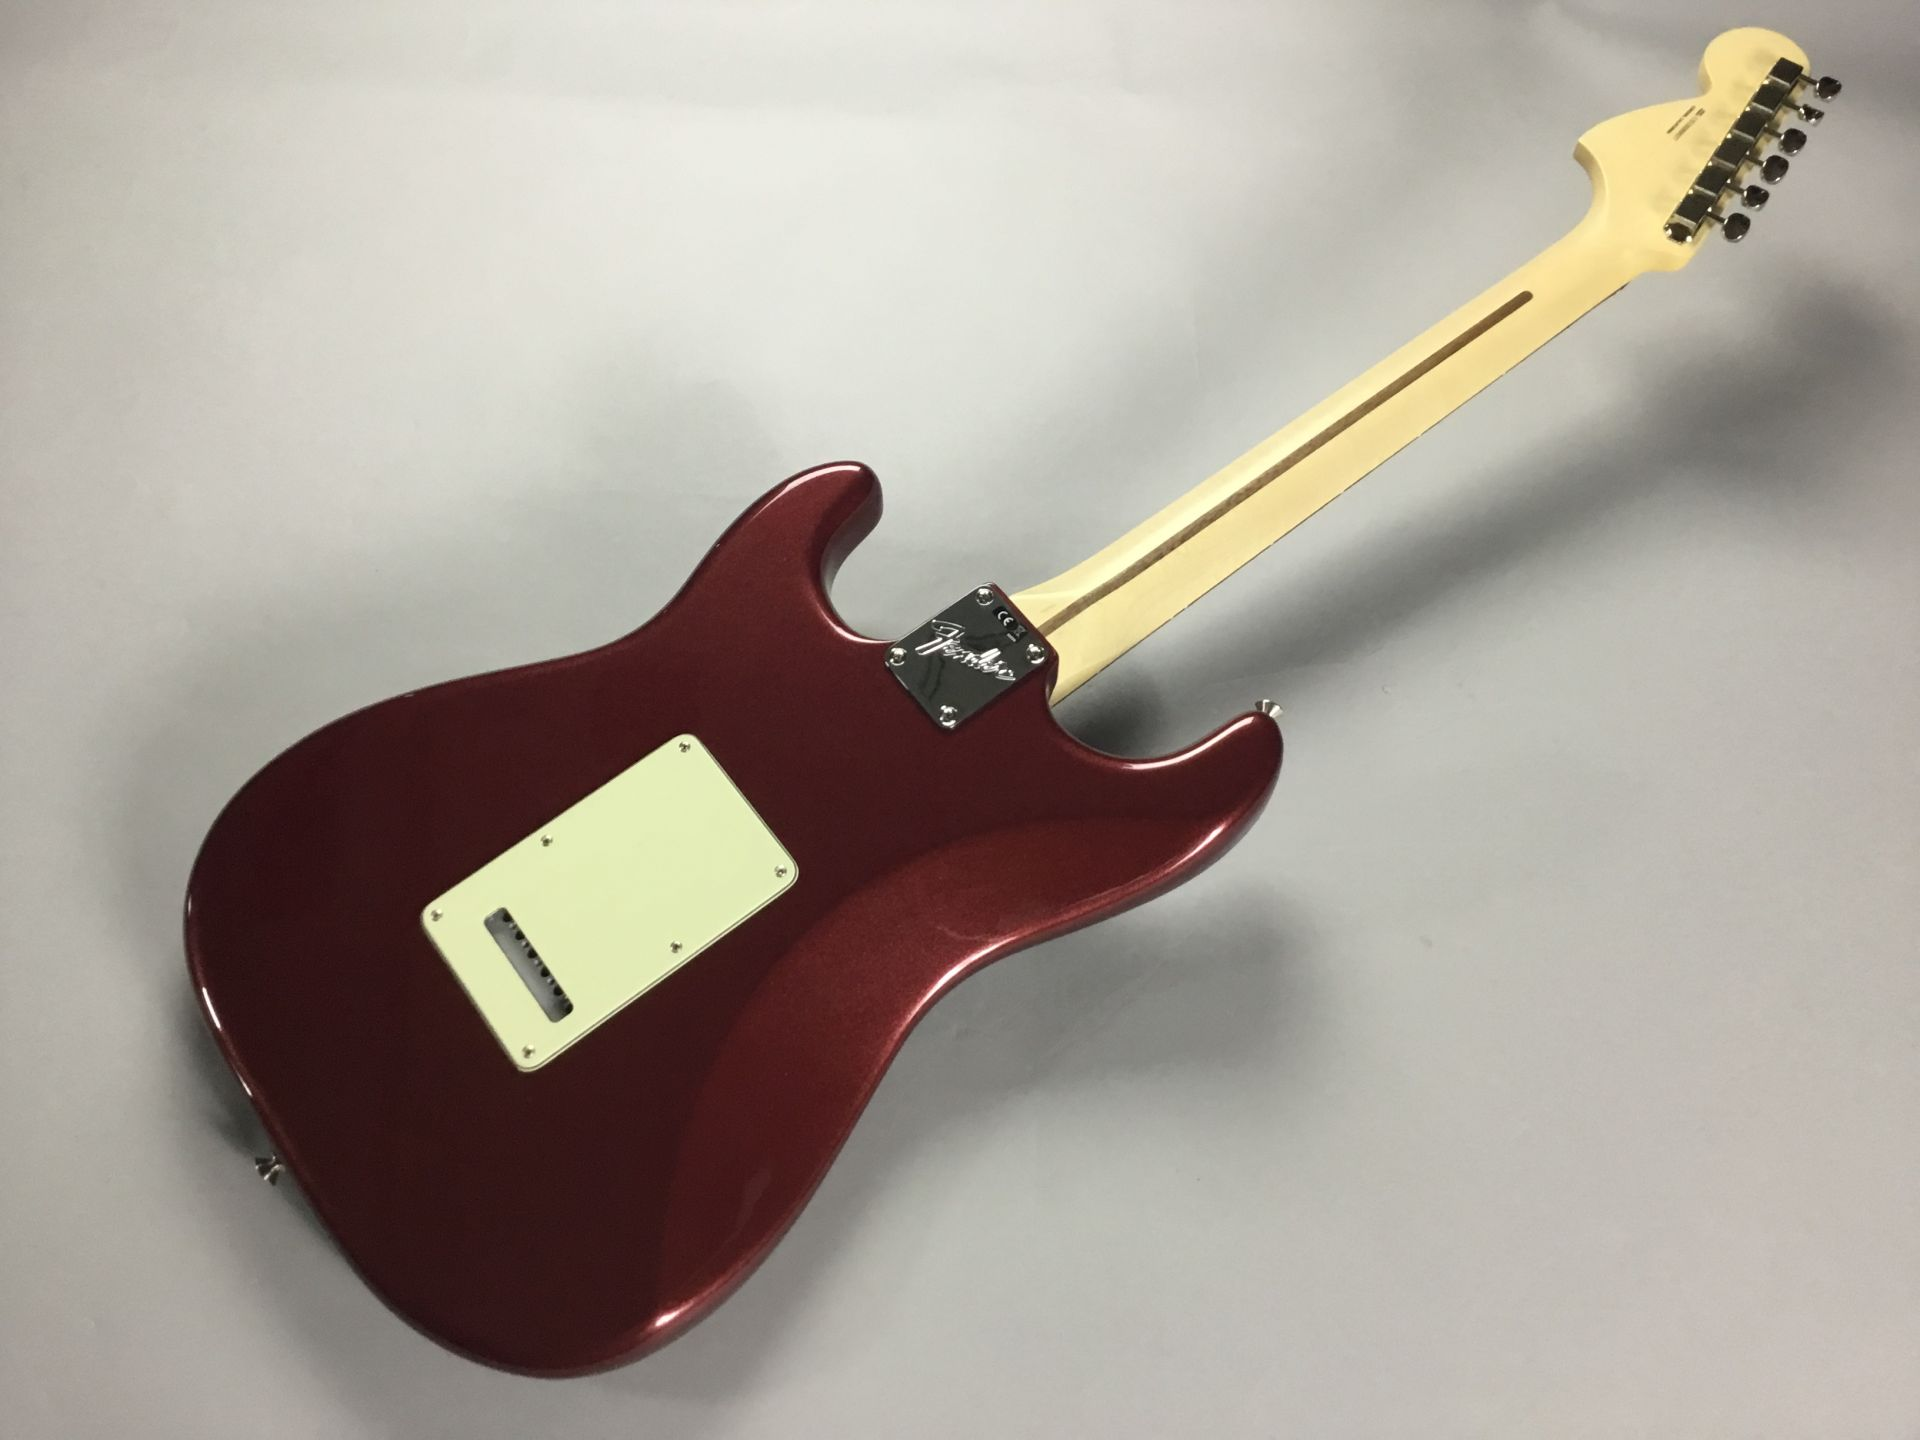 American Performer Stratocasterのヘッド裏-アップ画像